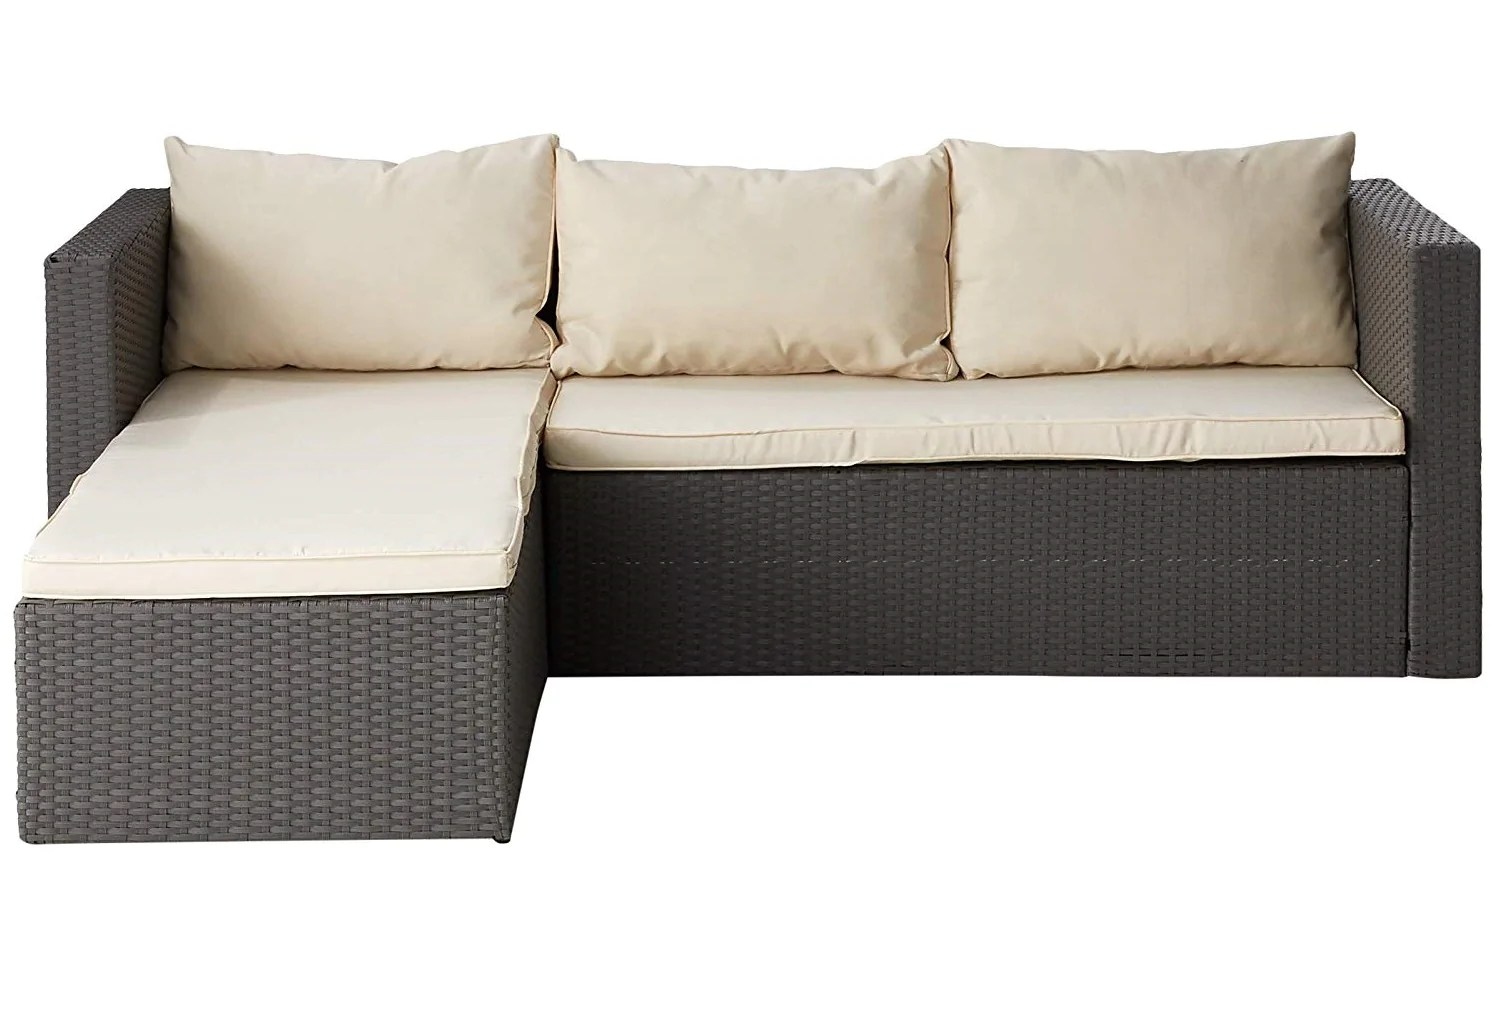 Rattan 3 Piece Sofa 3 Piece Sectional Seating Group Grey Rattan Cream Cushions